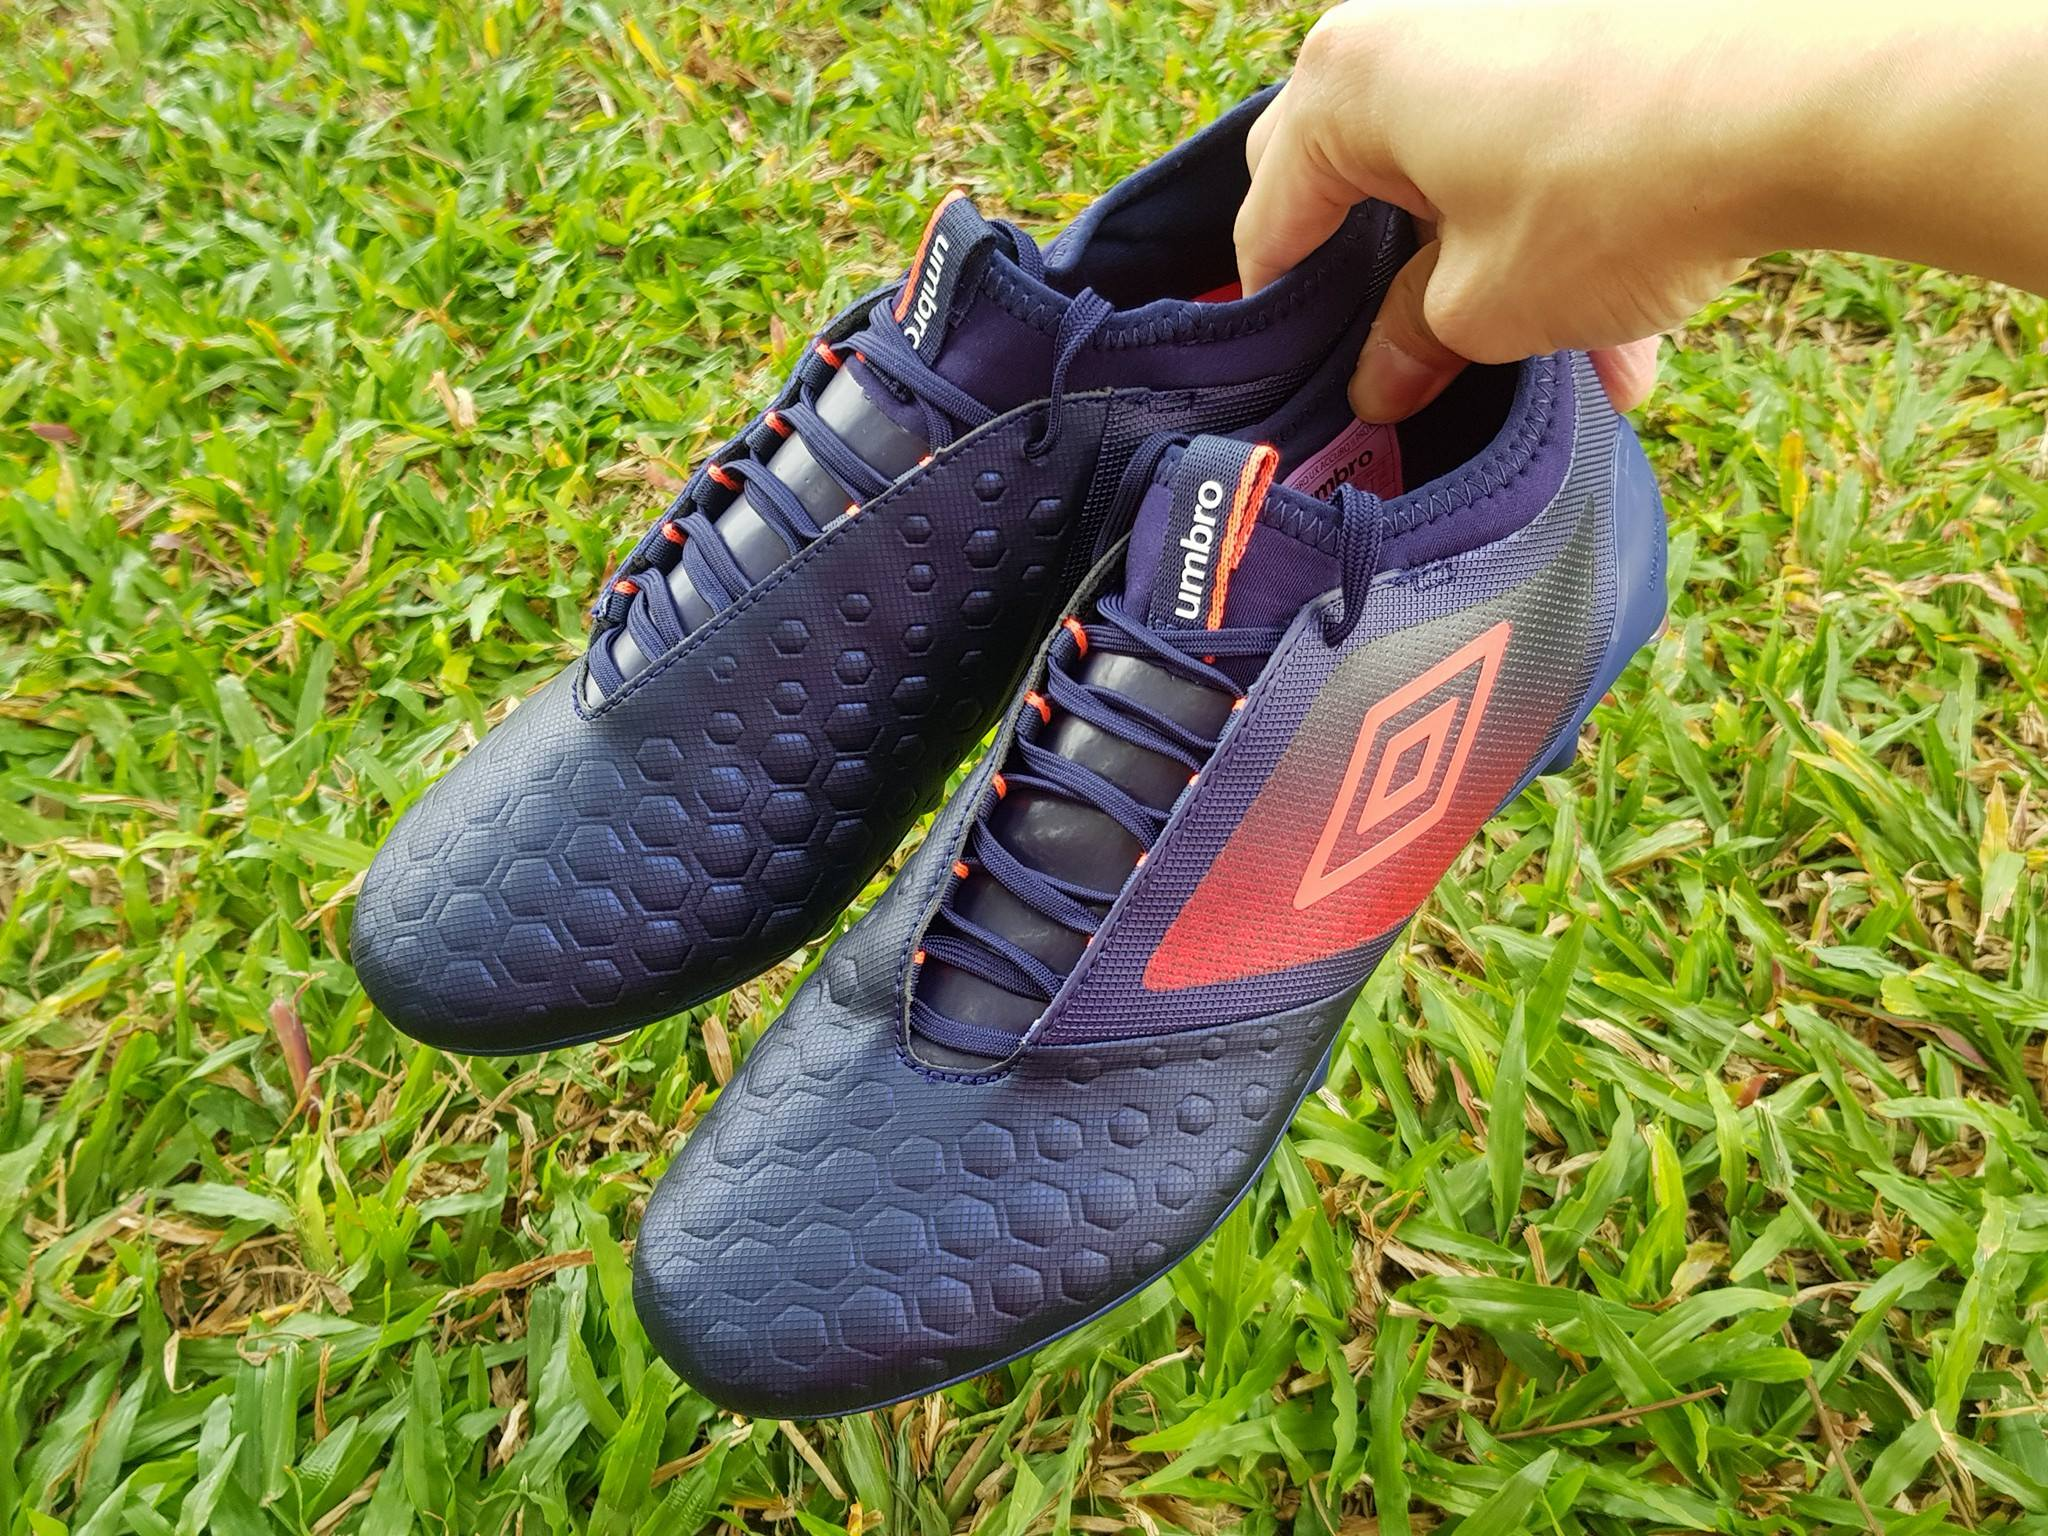 00b9b77fc Umbro UX-Accuro 2 Pro Review by VolkyFootballBoots | Volky Football Boots